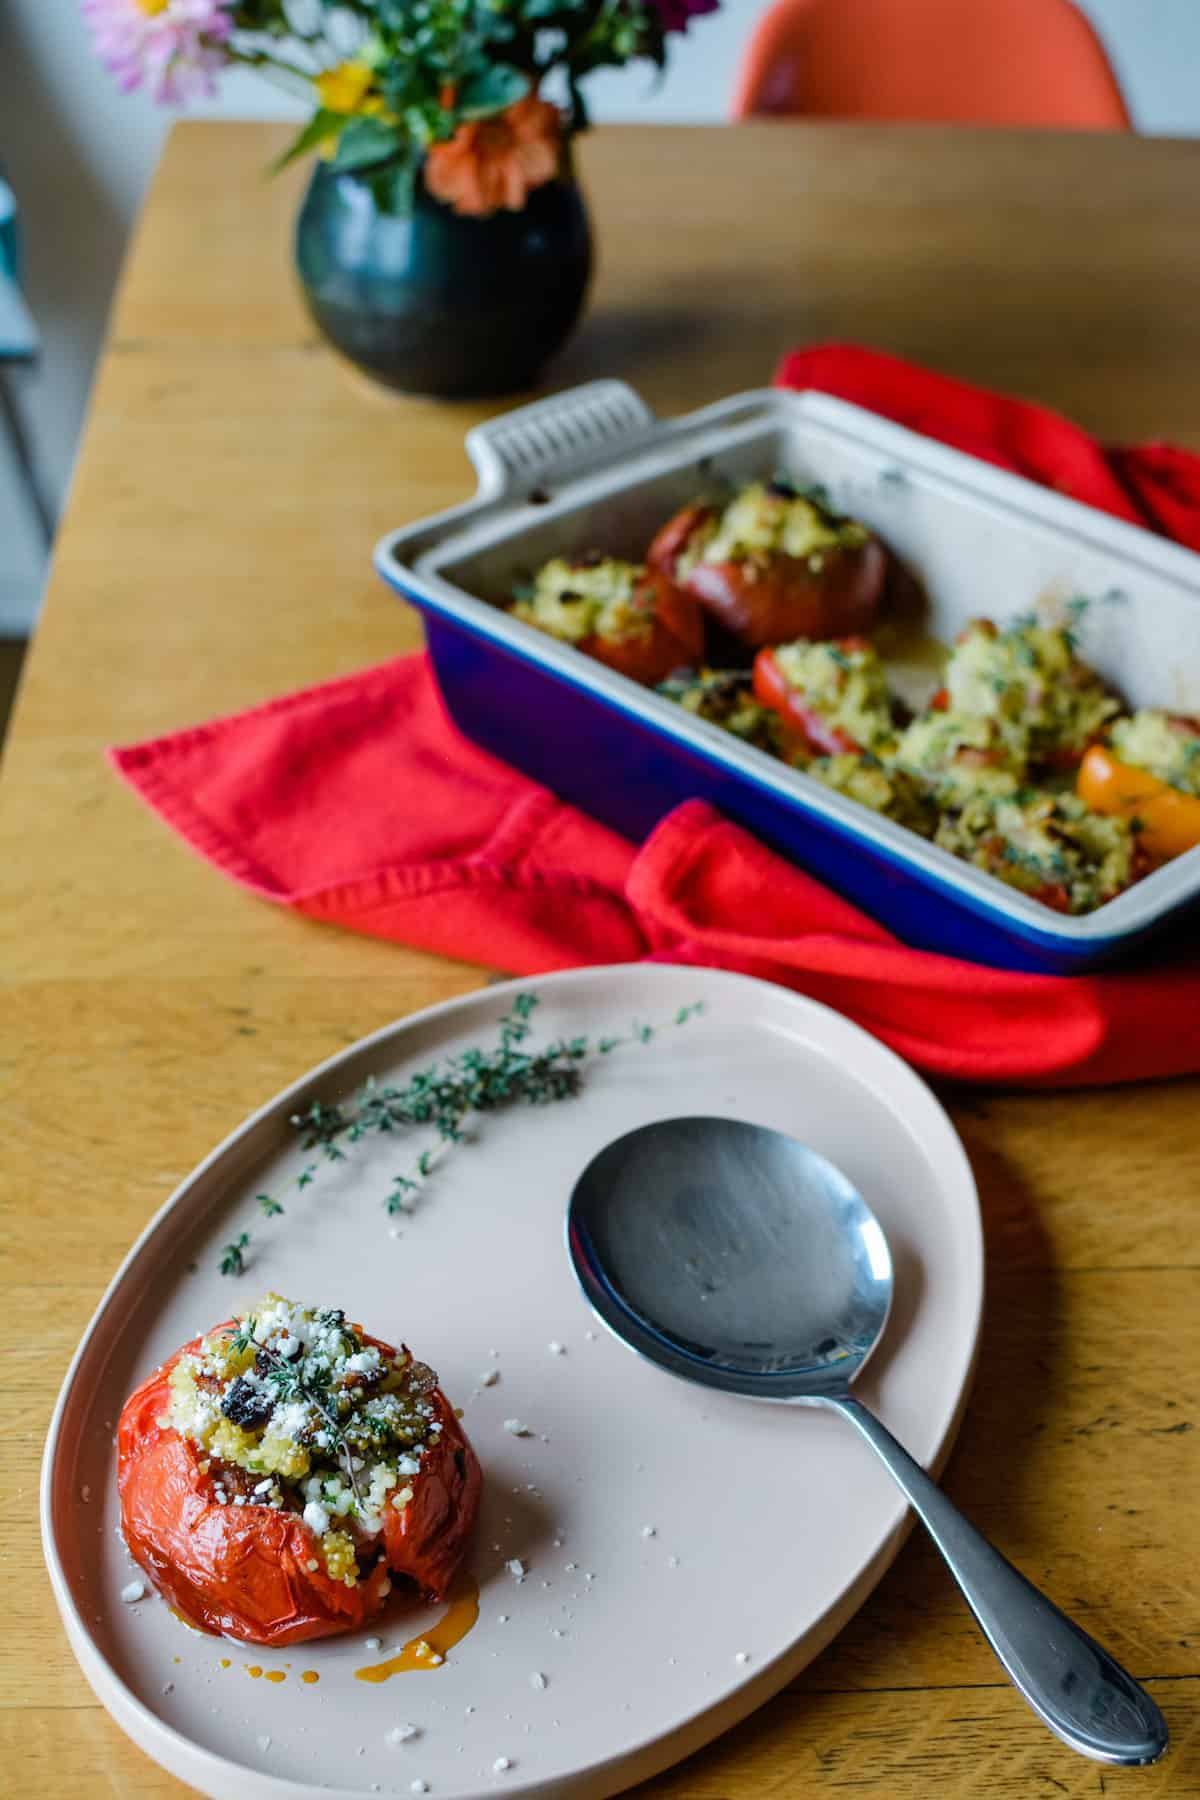 A pink, oval platter with a stuffed tomato on it as well as a stainless steel serving spoon and some thyme leaves.